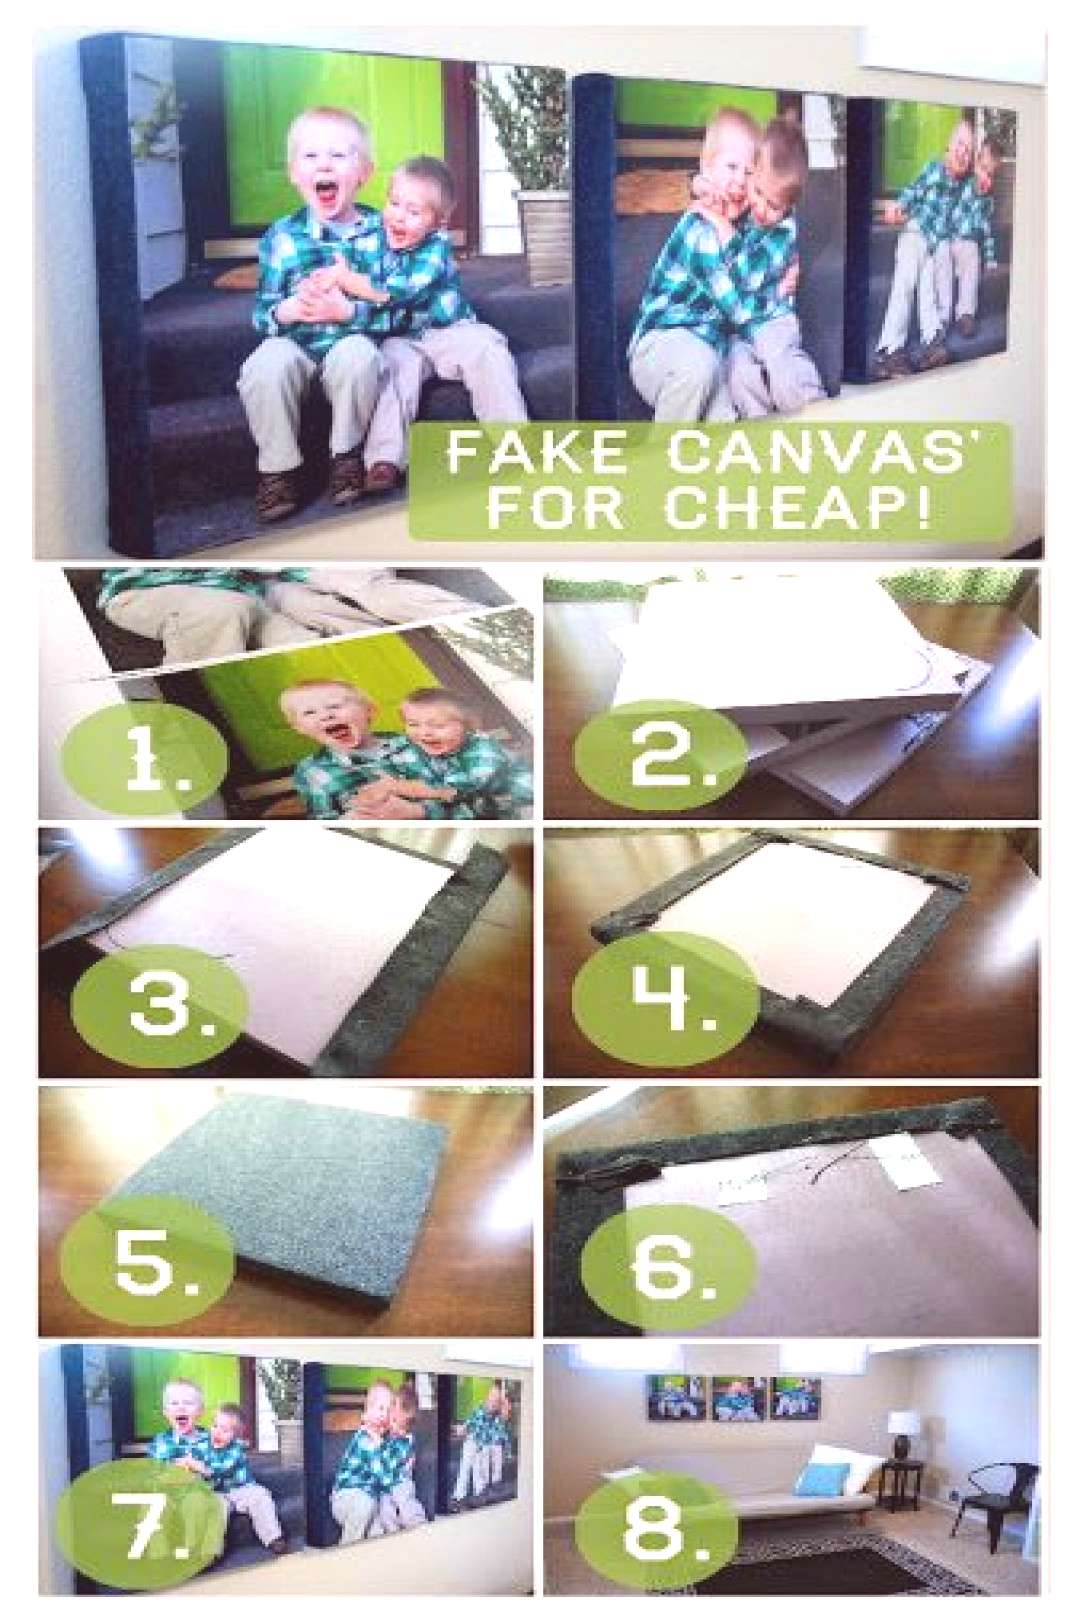 Fake Photo Canvas using Fabric and Insulation